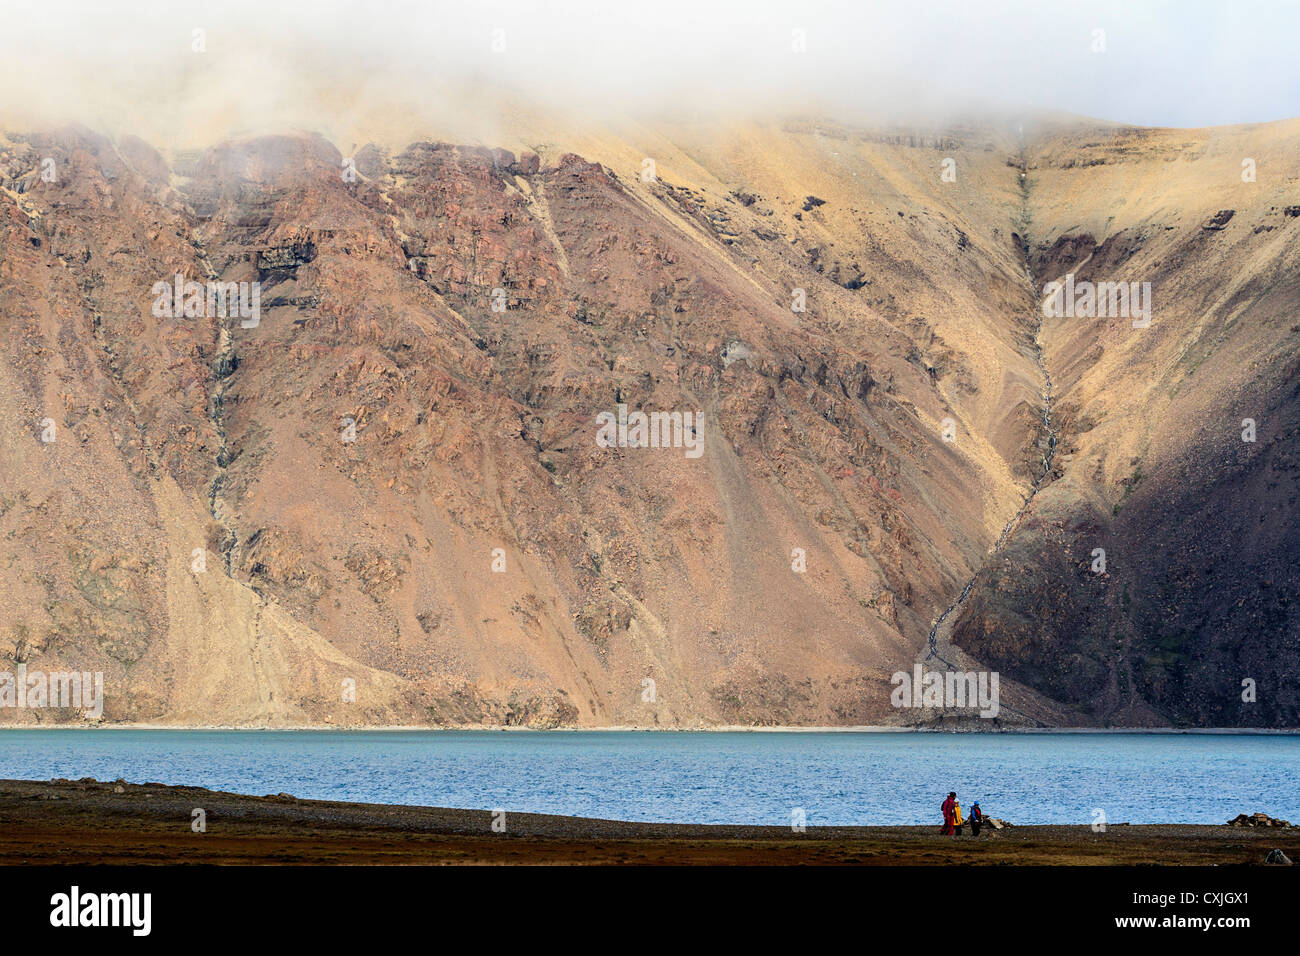 Dundas Harbour, Nunavut, Canadian high arctic. Early August. - Stock Image